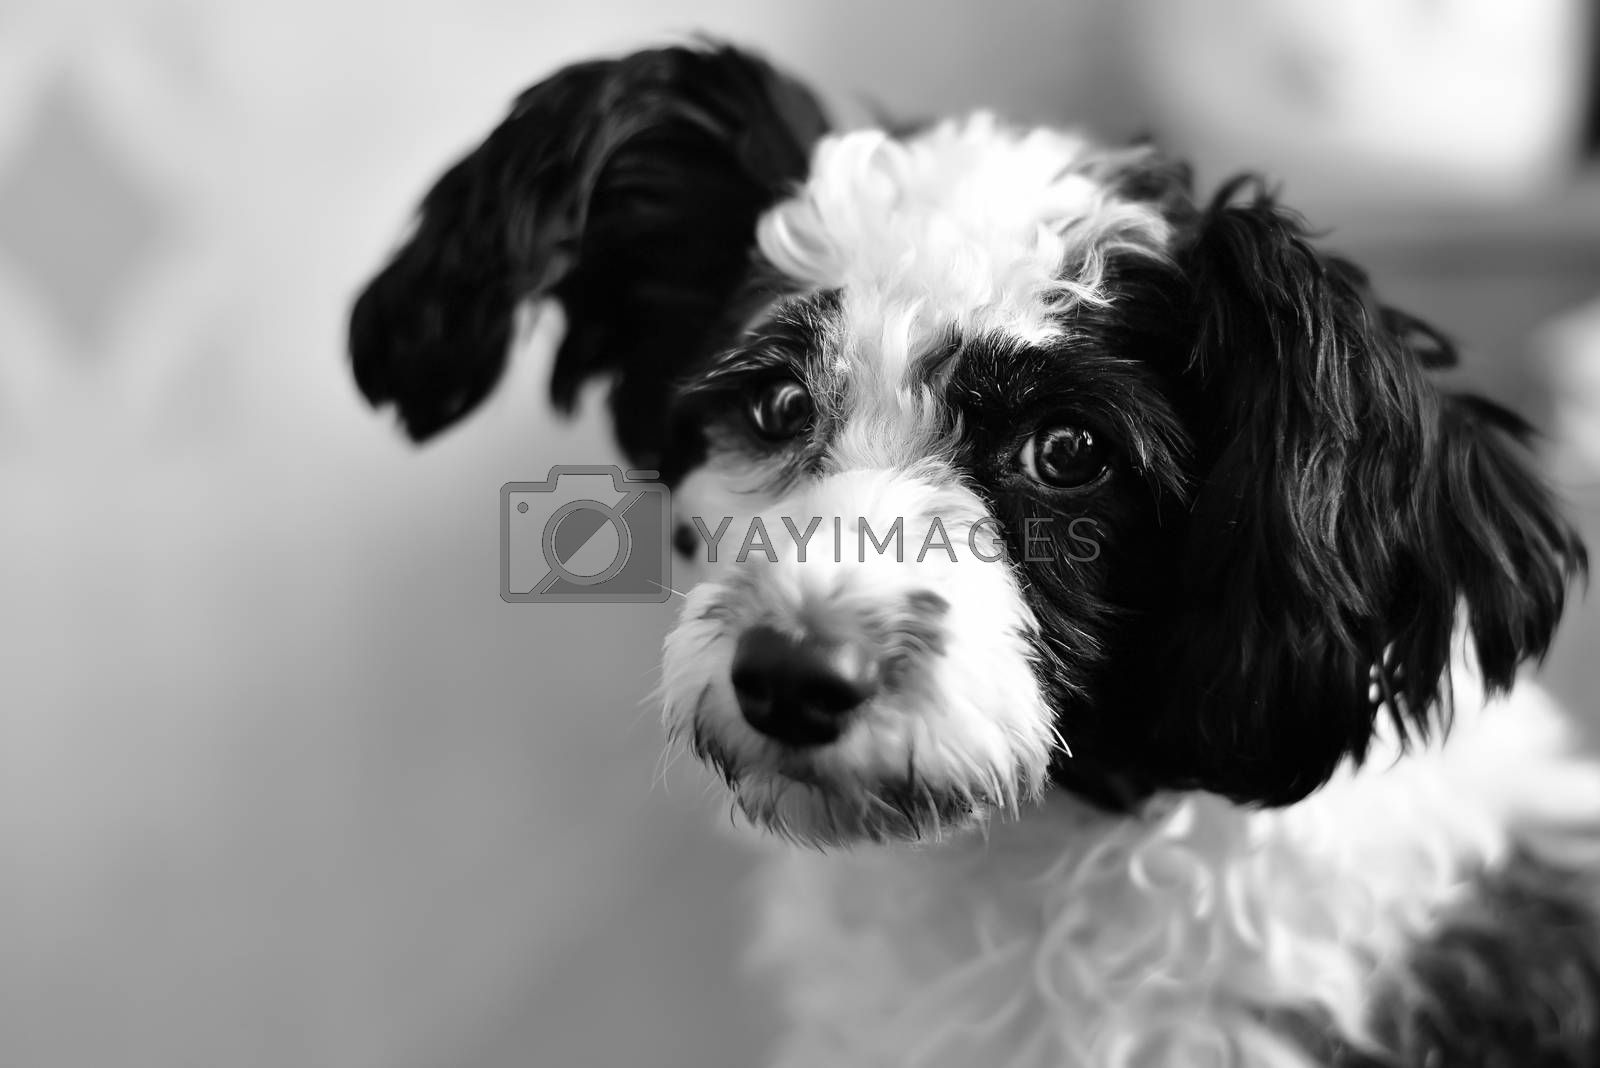 Chinese crested dog portrait on black background